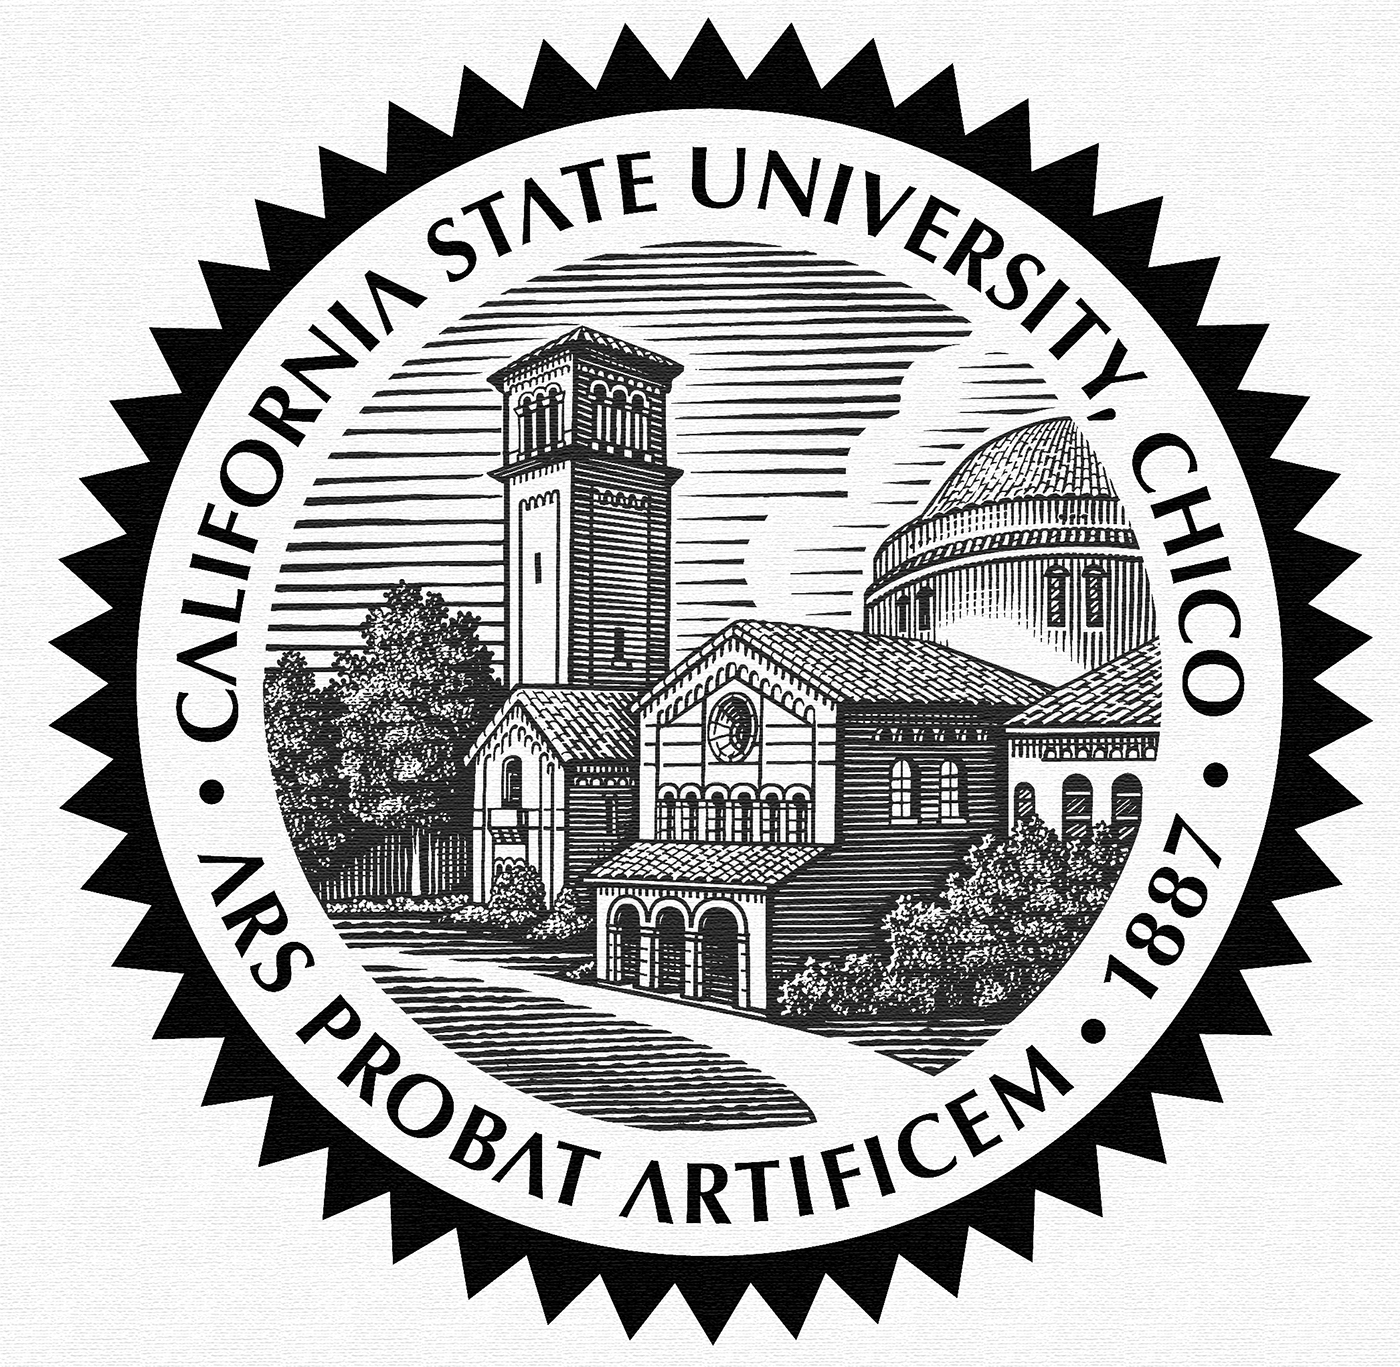 CSU Chico Seal Illustrated by Steven Noble on Behance.